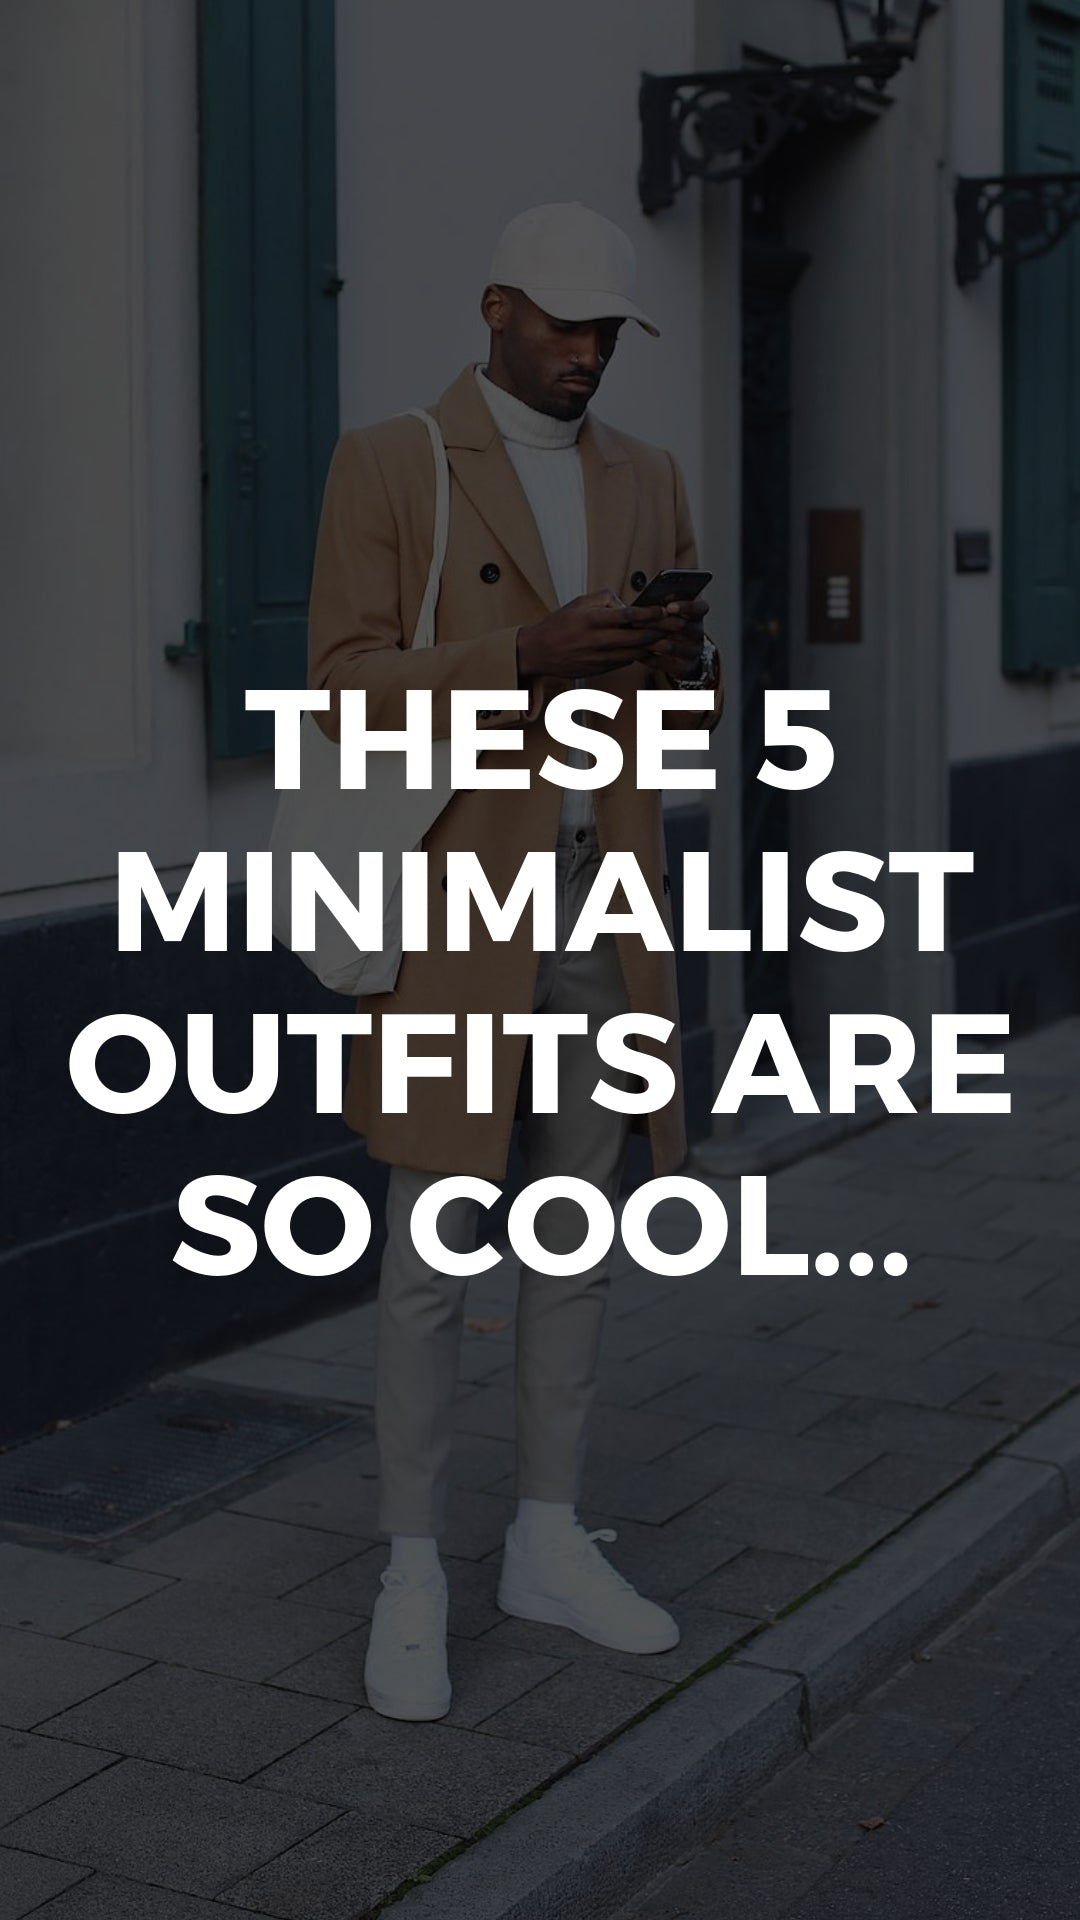 These 5 Minimalist Outfits Are So Cool... #minimalist #streetstyle #mensfashion